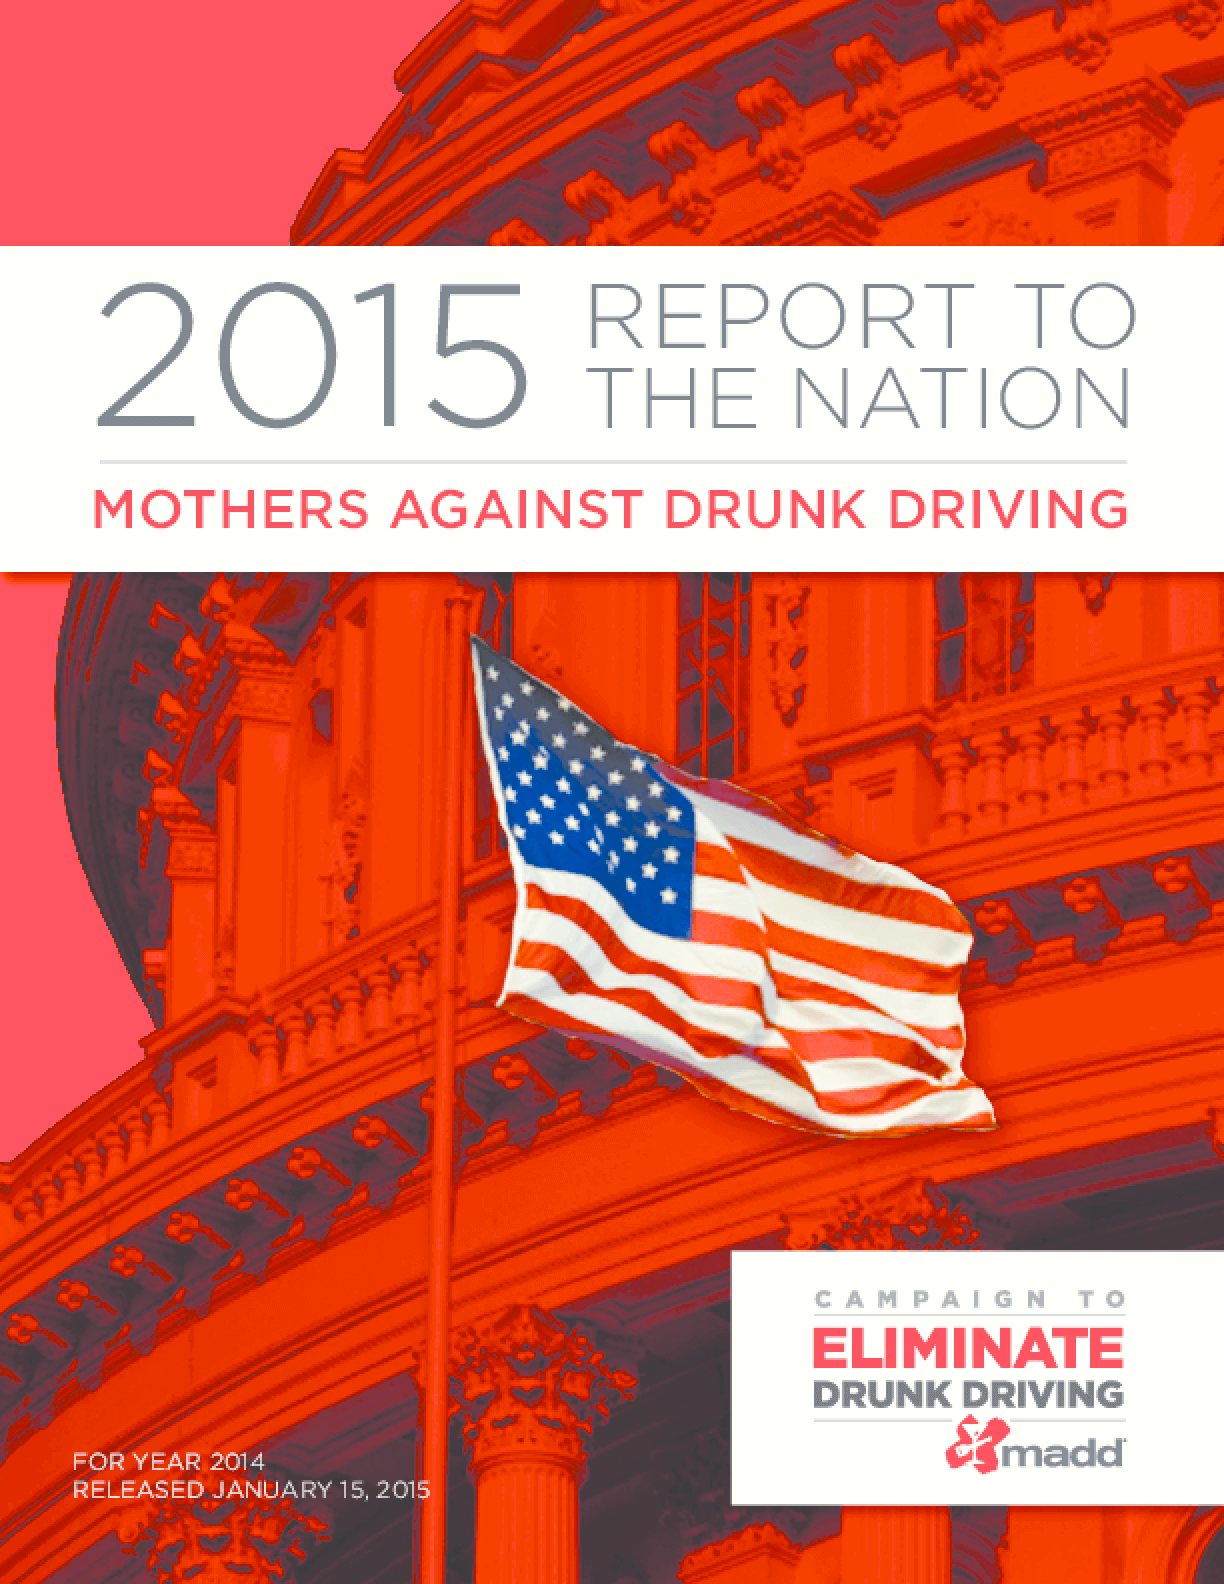 2014 Report to the Nation: Mothers Against Drunk Driving